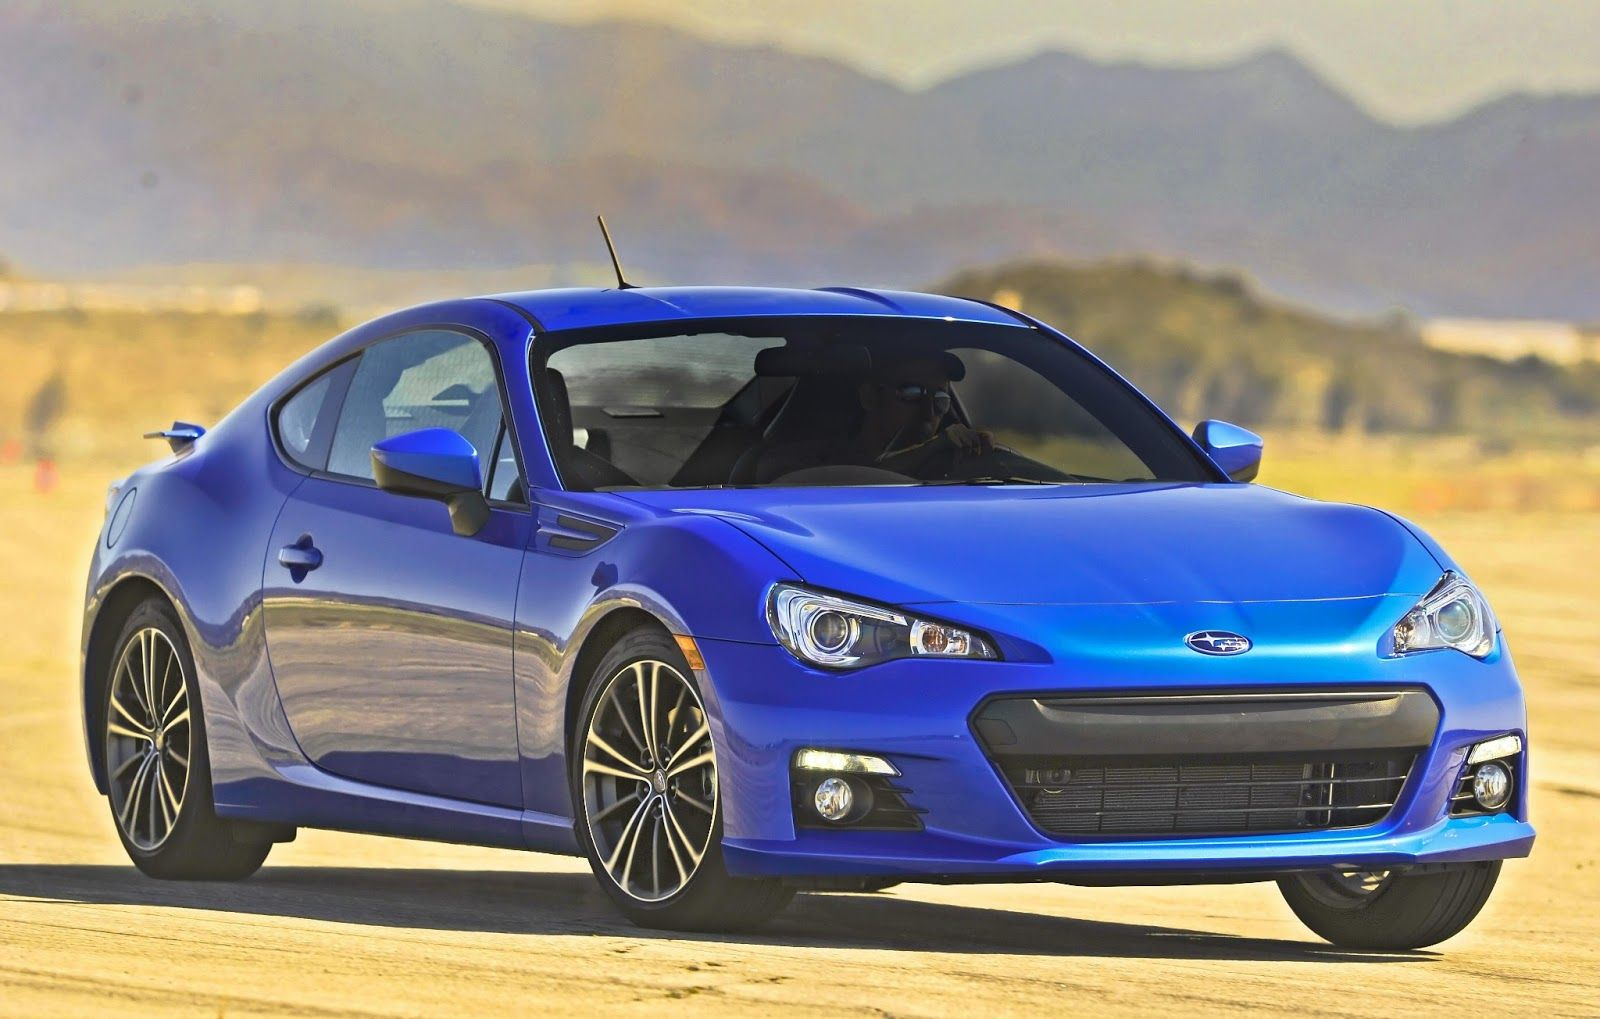 Cool Cars,Cool Cars Under 5K,Top 5 Affordable Sports Cars